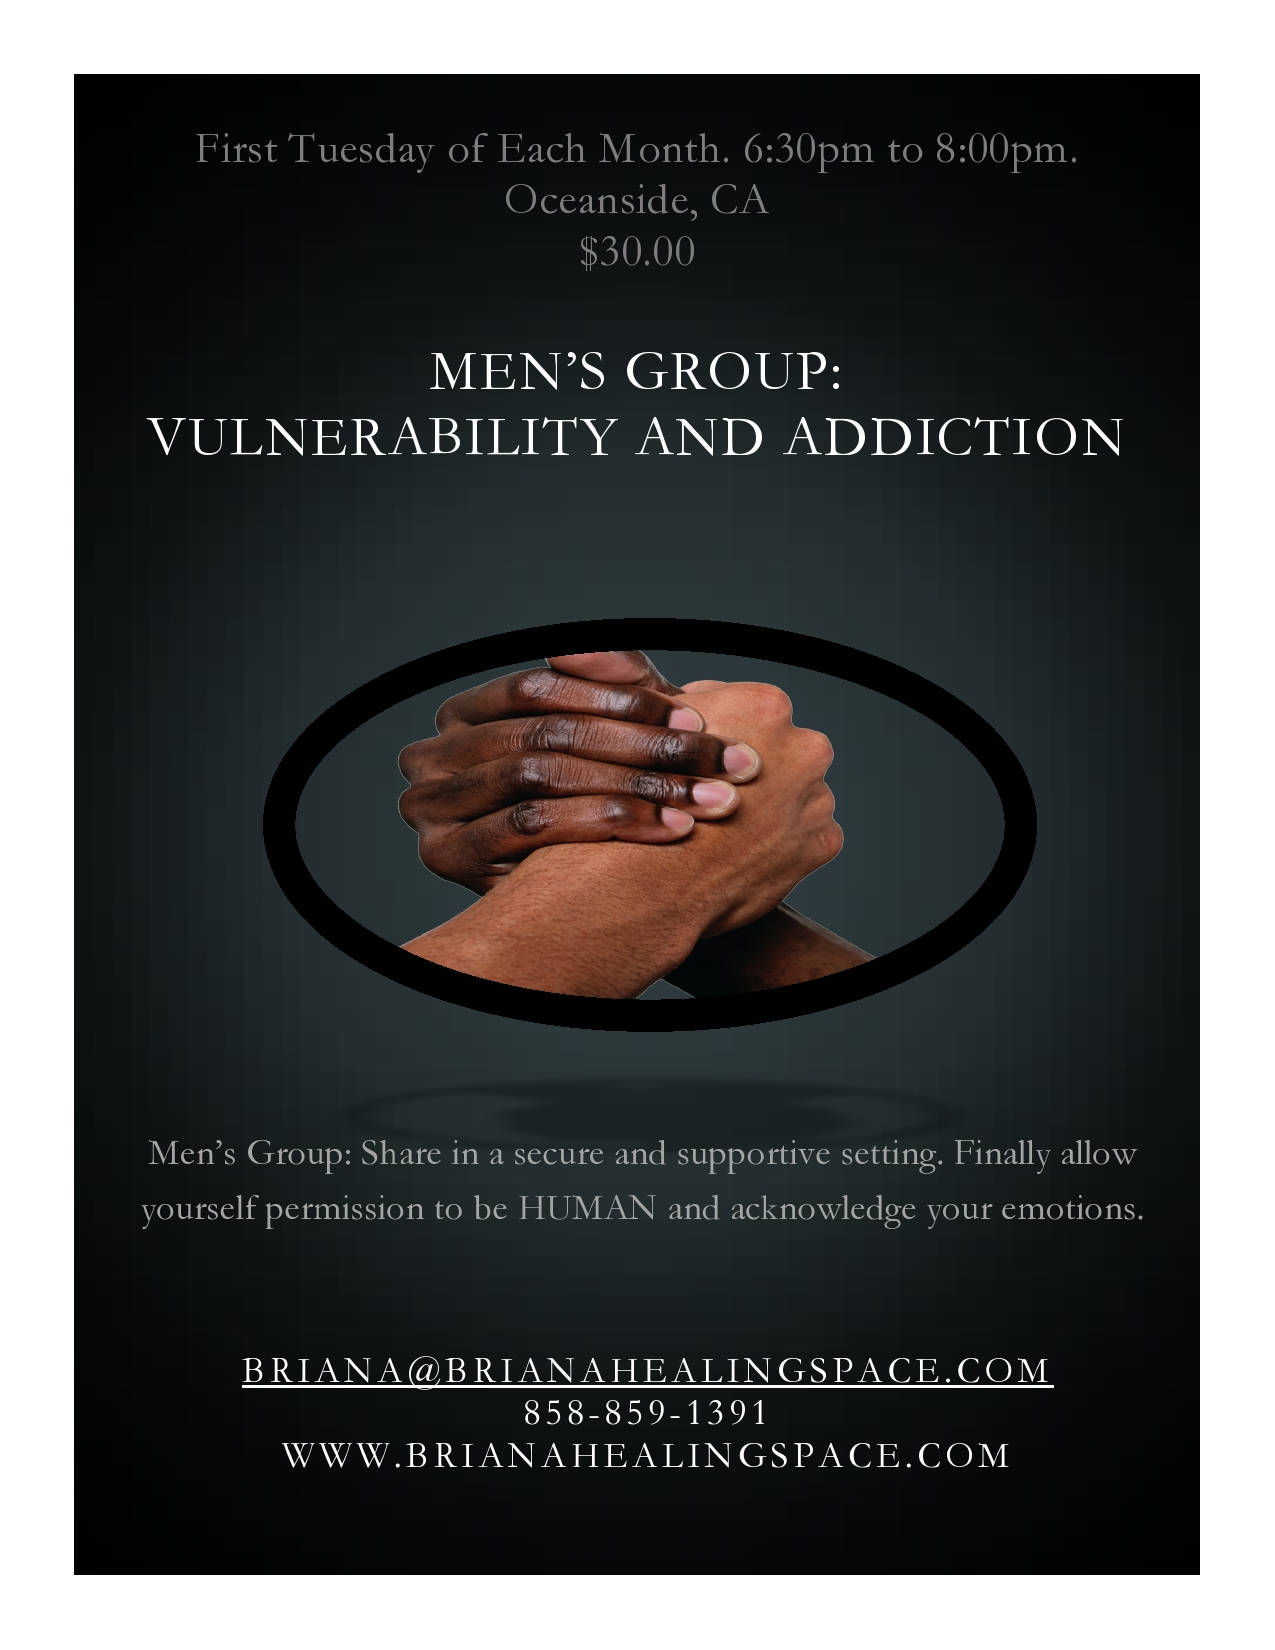 Men's Vulnerability and Addiction Group-page0001.jpg